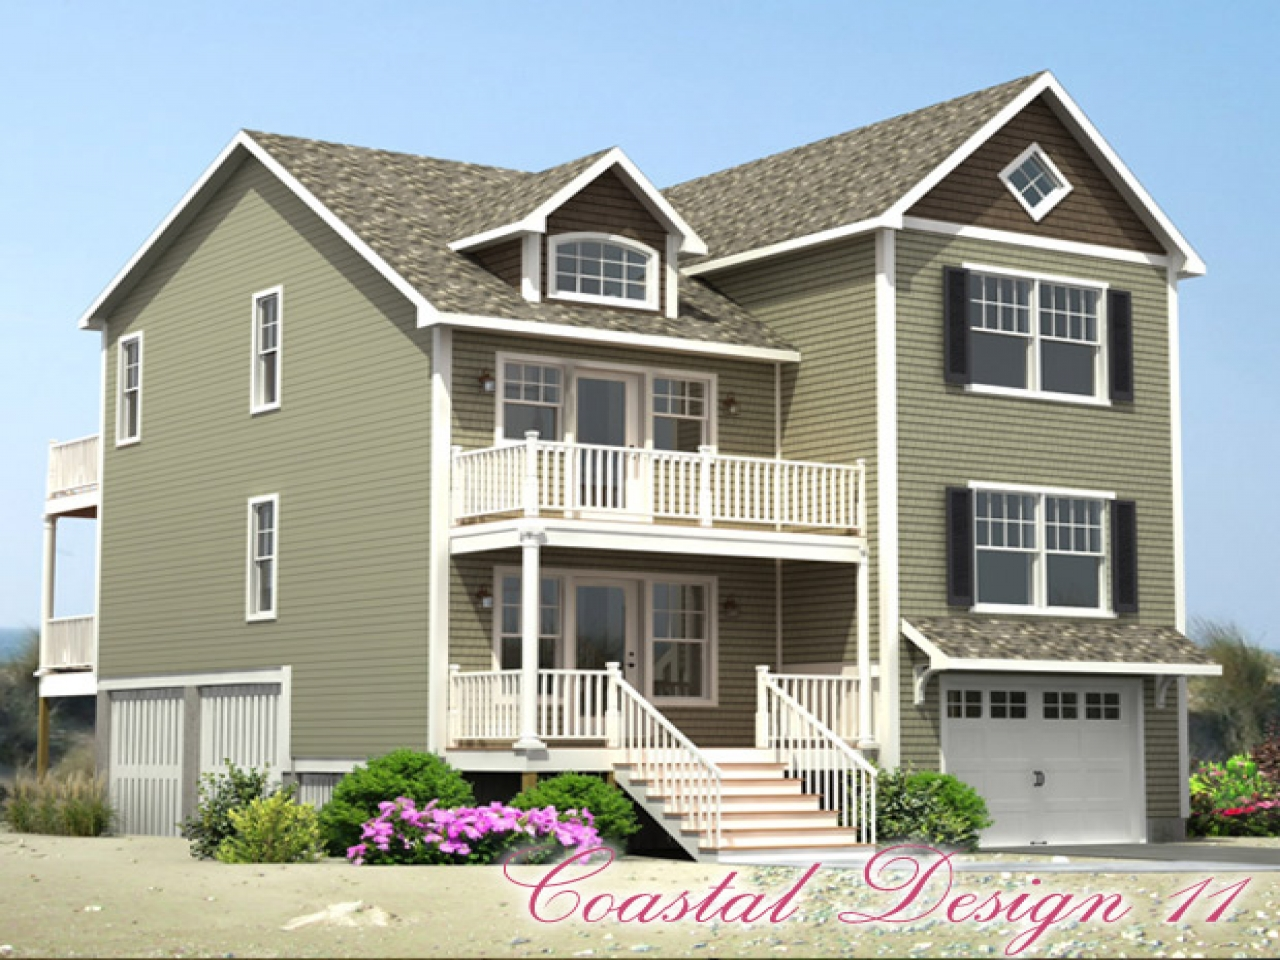 Coastal Modular Home Designs Cottage Style Modular Home